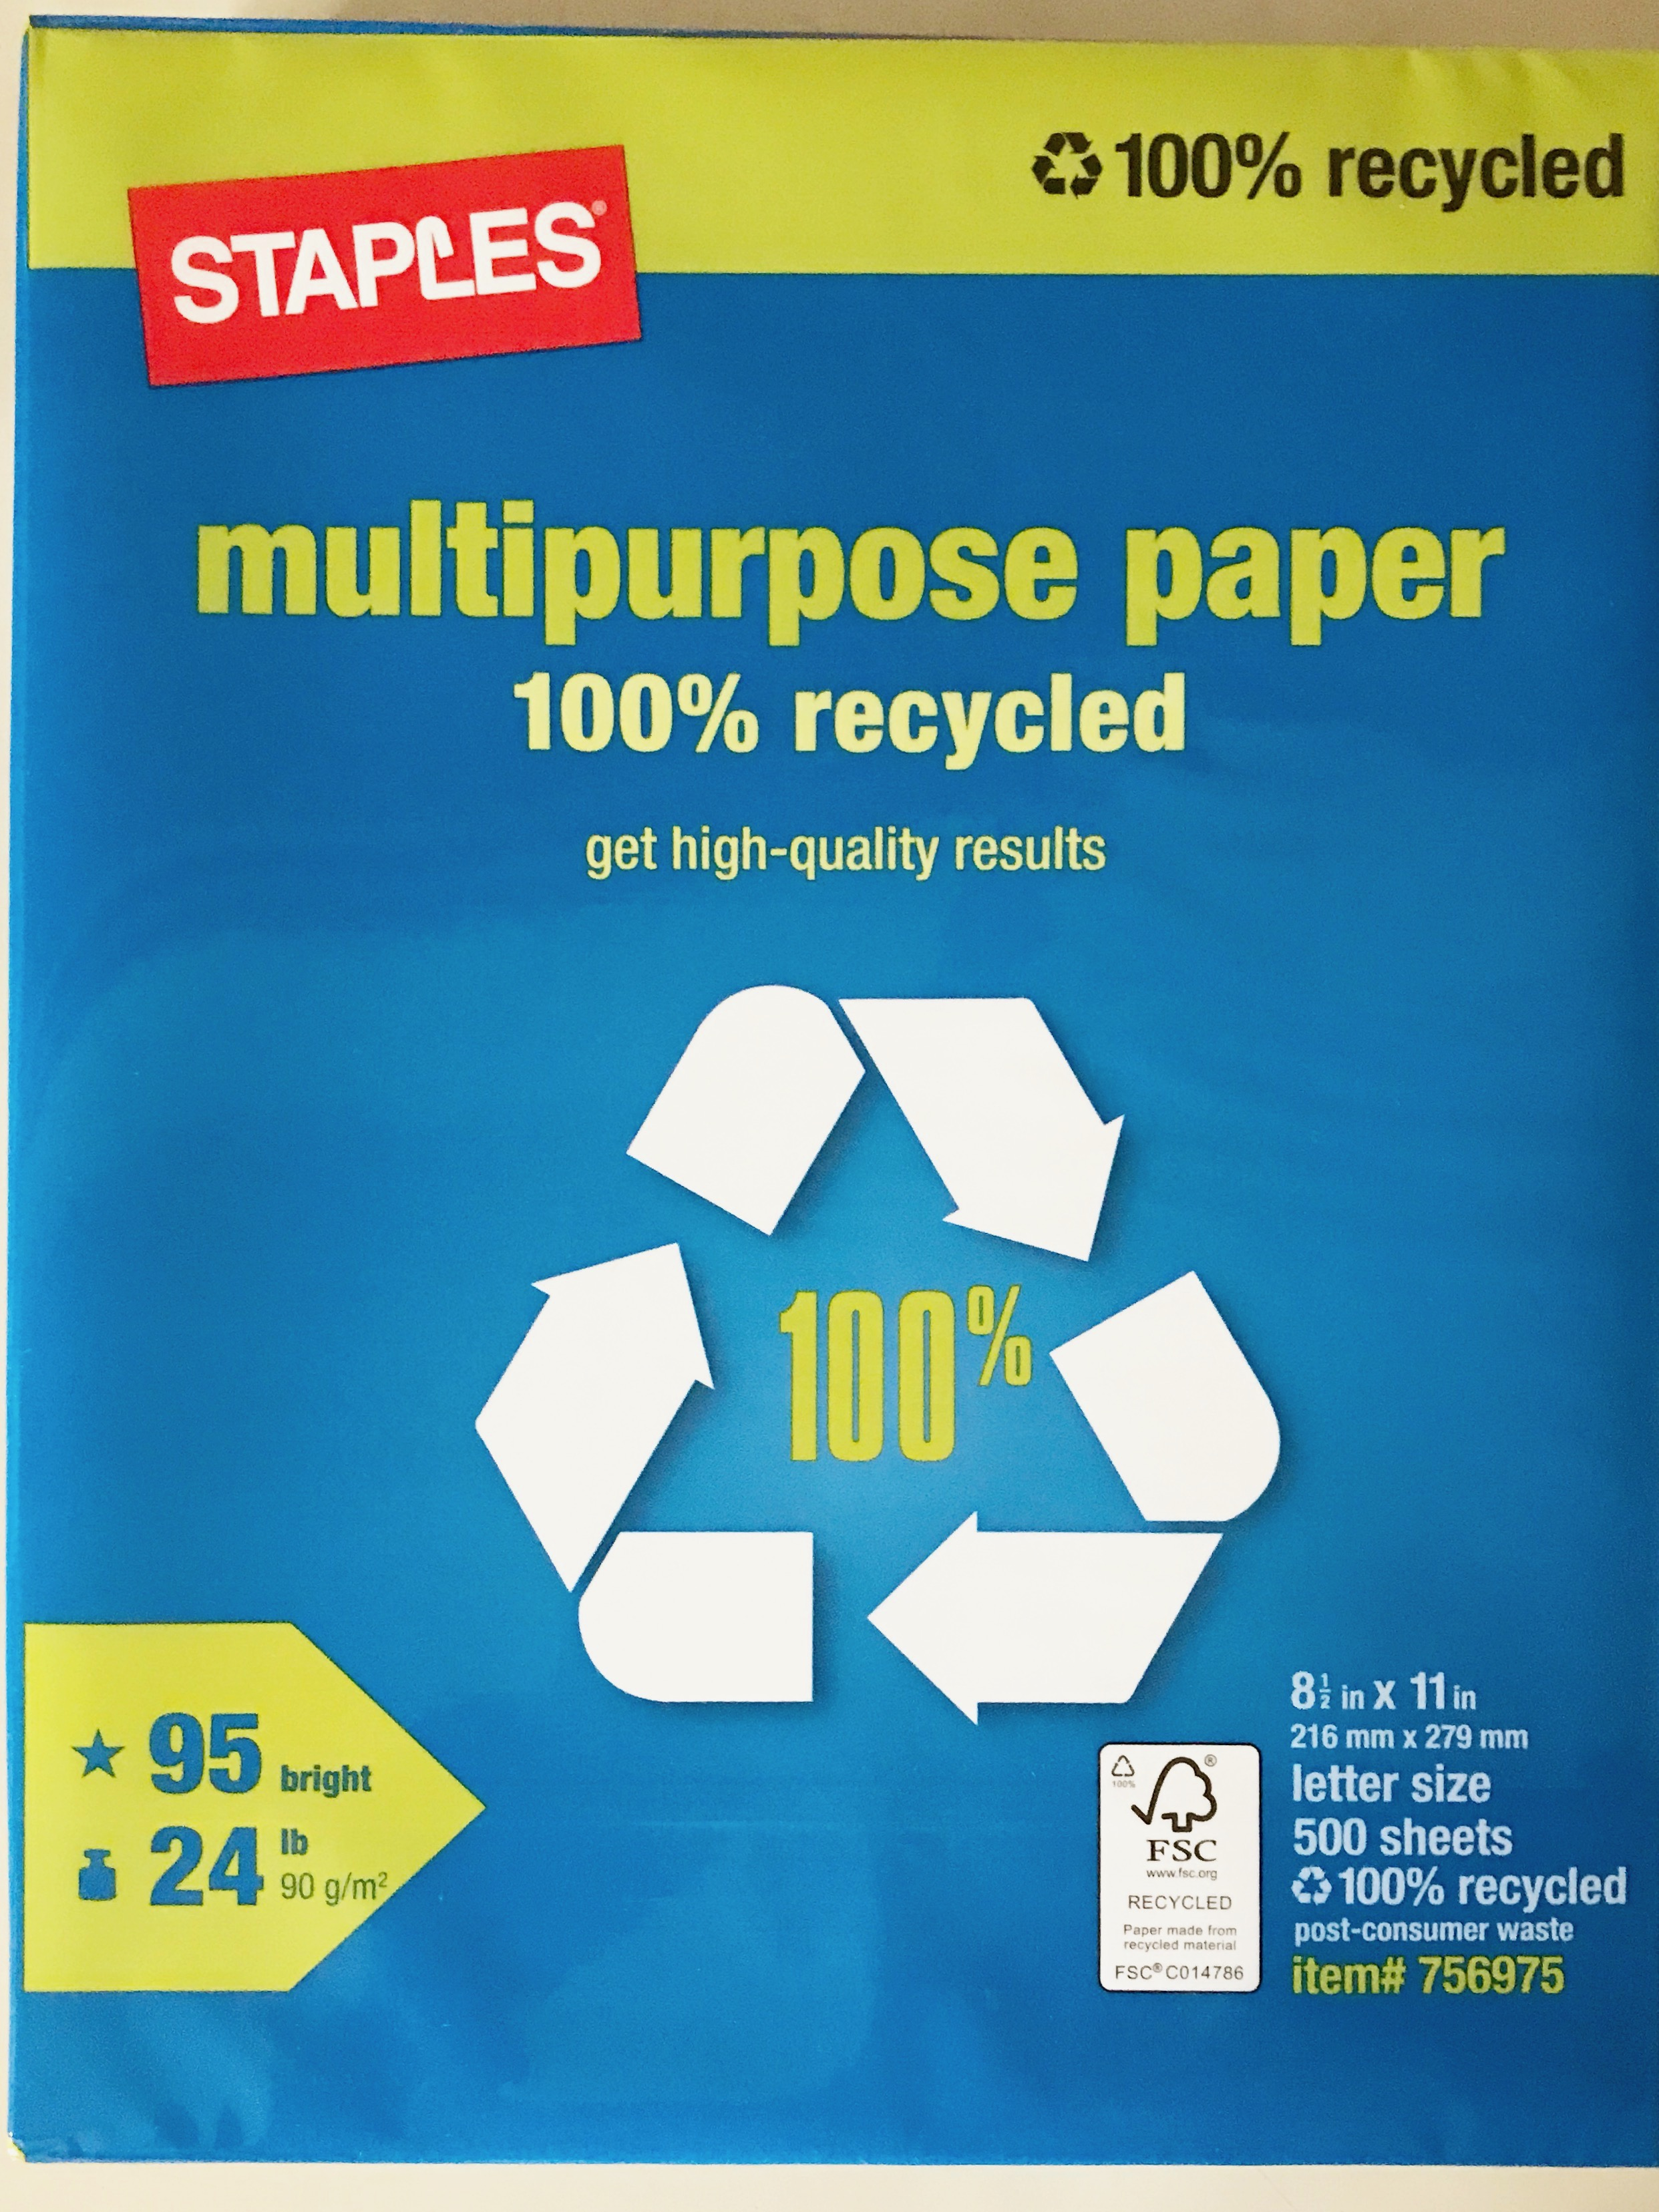 Staples Multipurpose Paper: - You can find this paper here at staples.com.